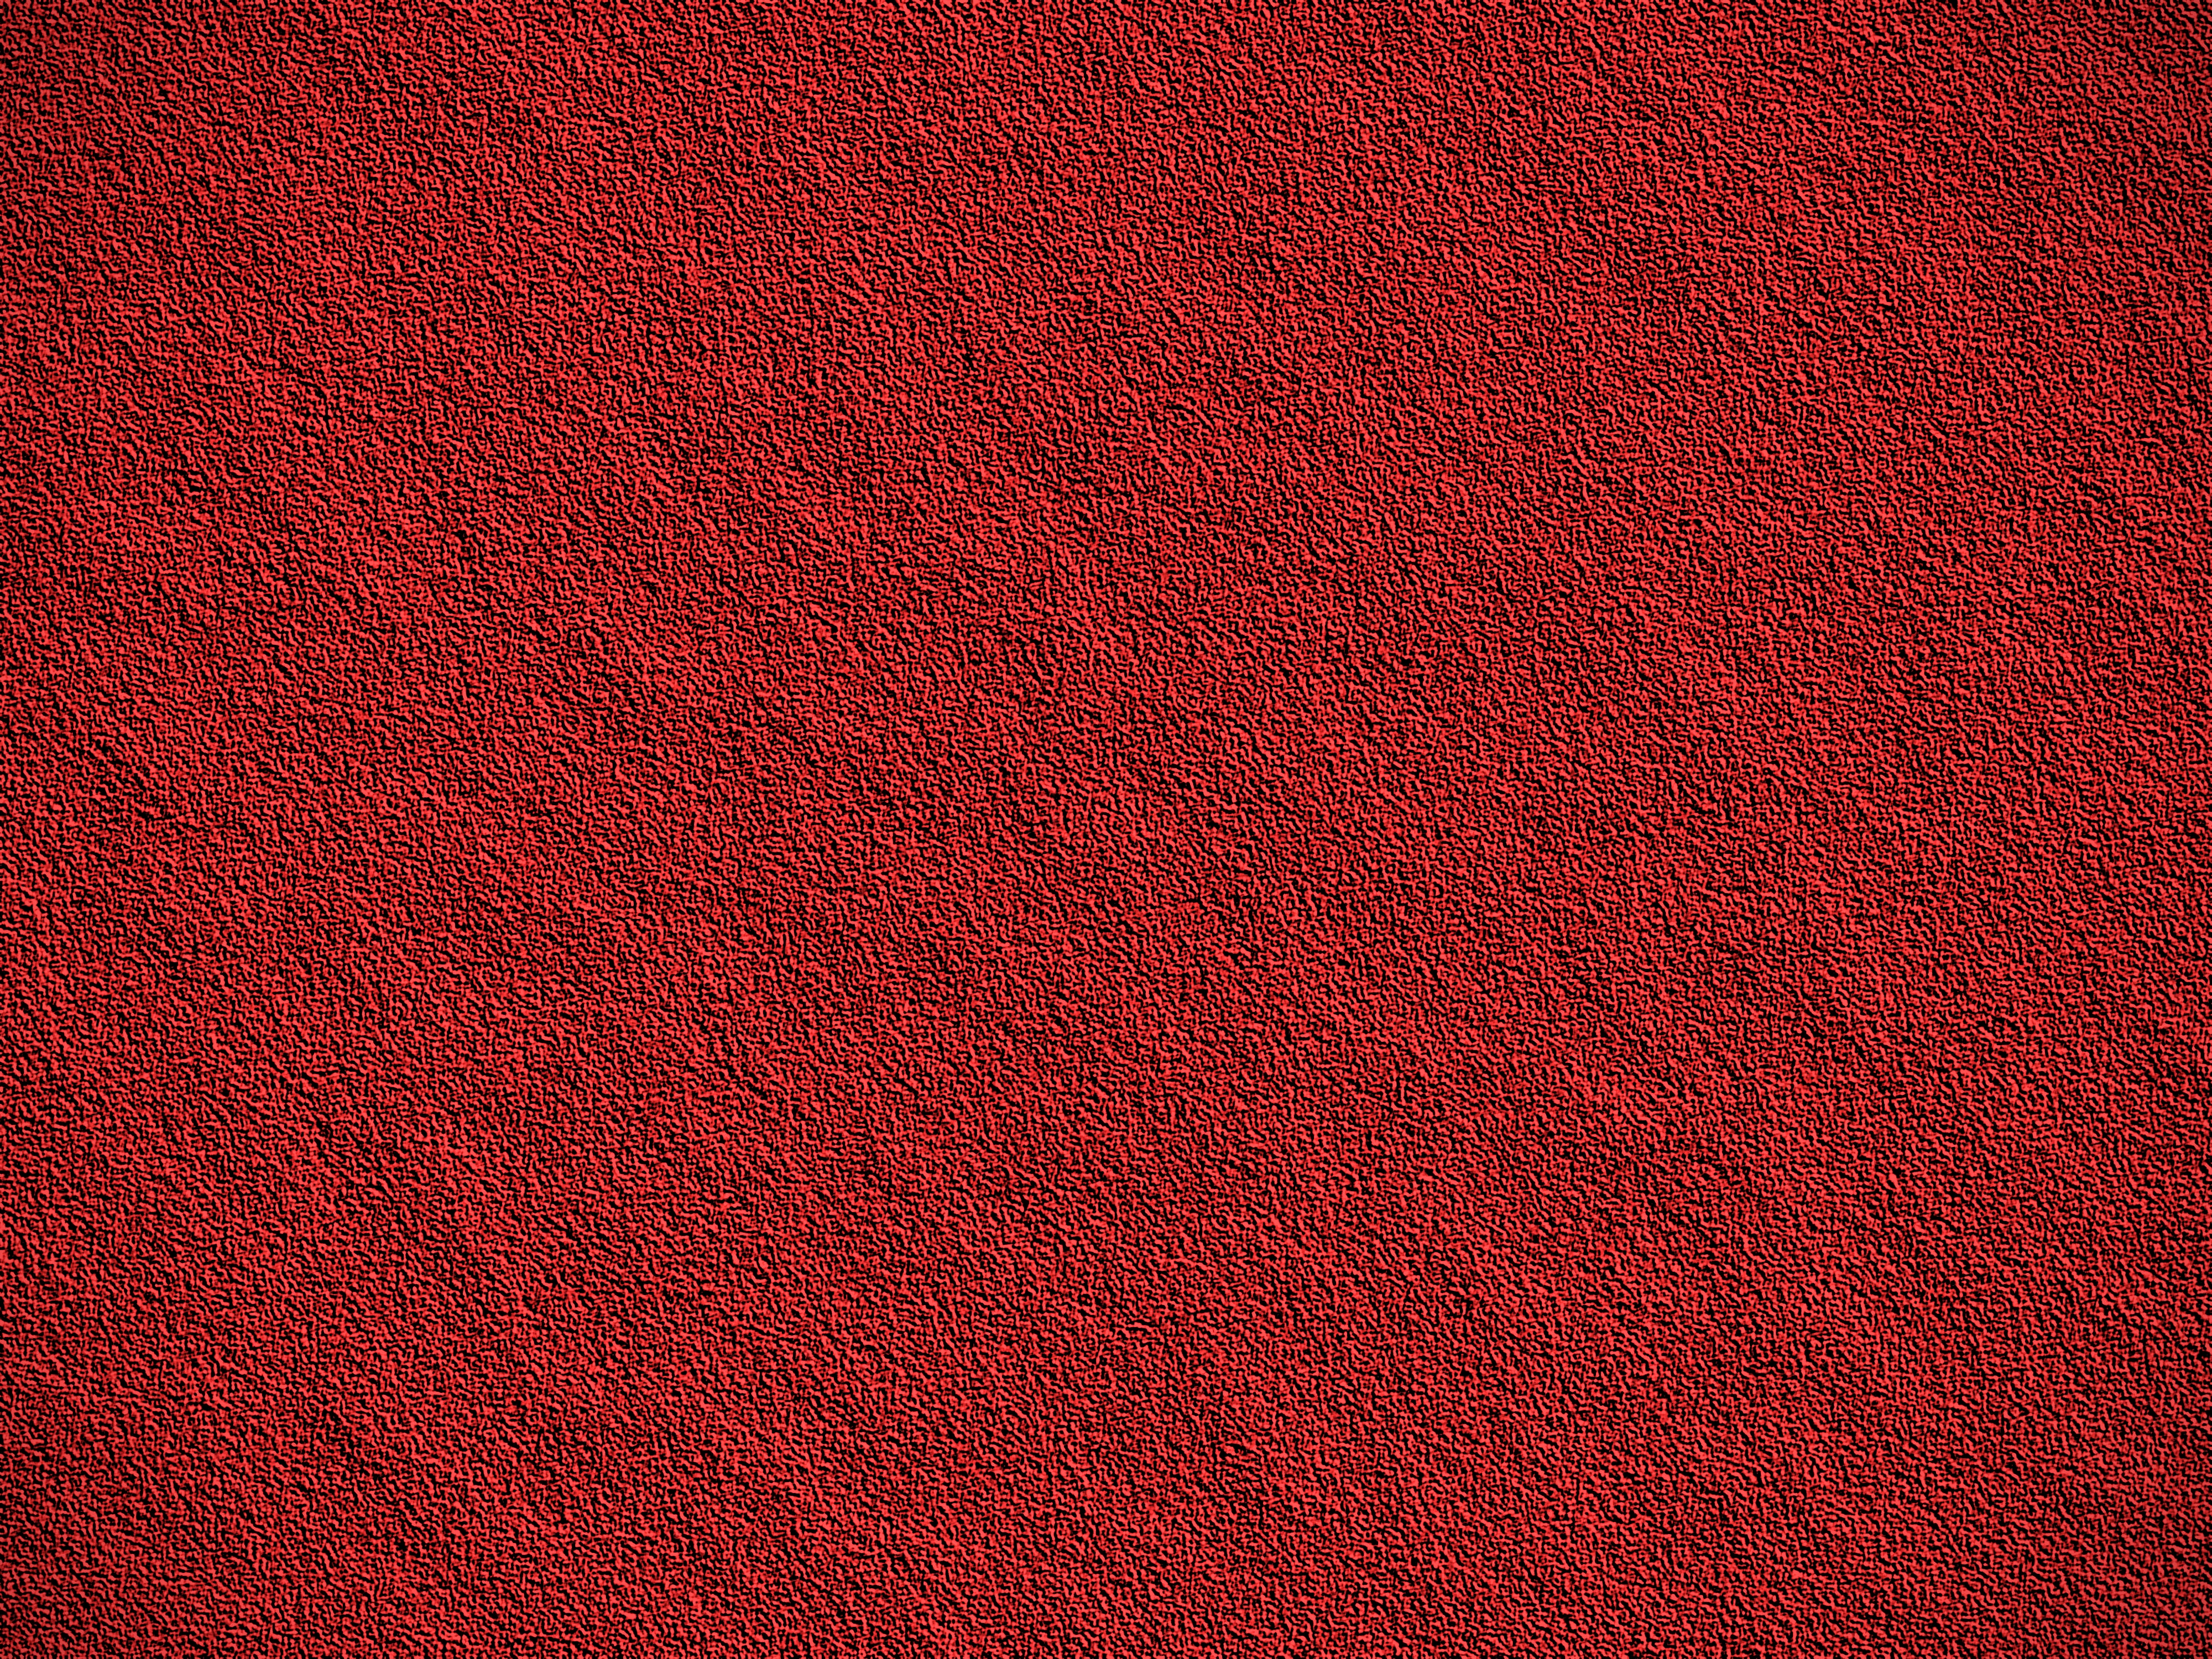 Big Red Rough Grunge Texture